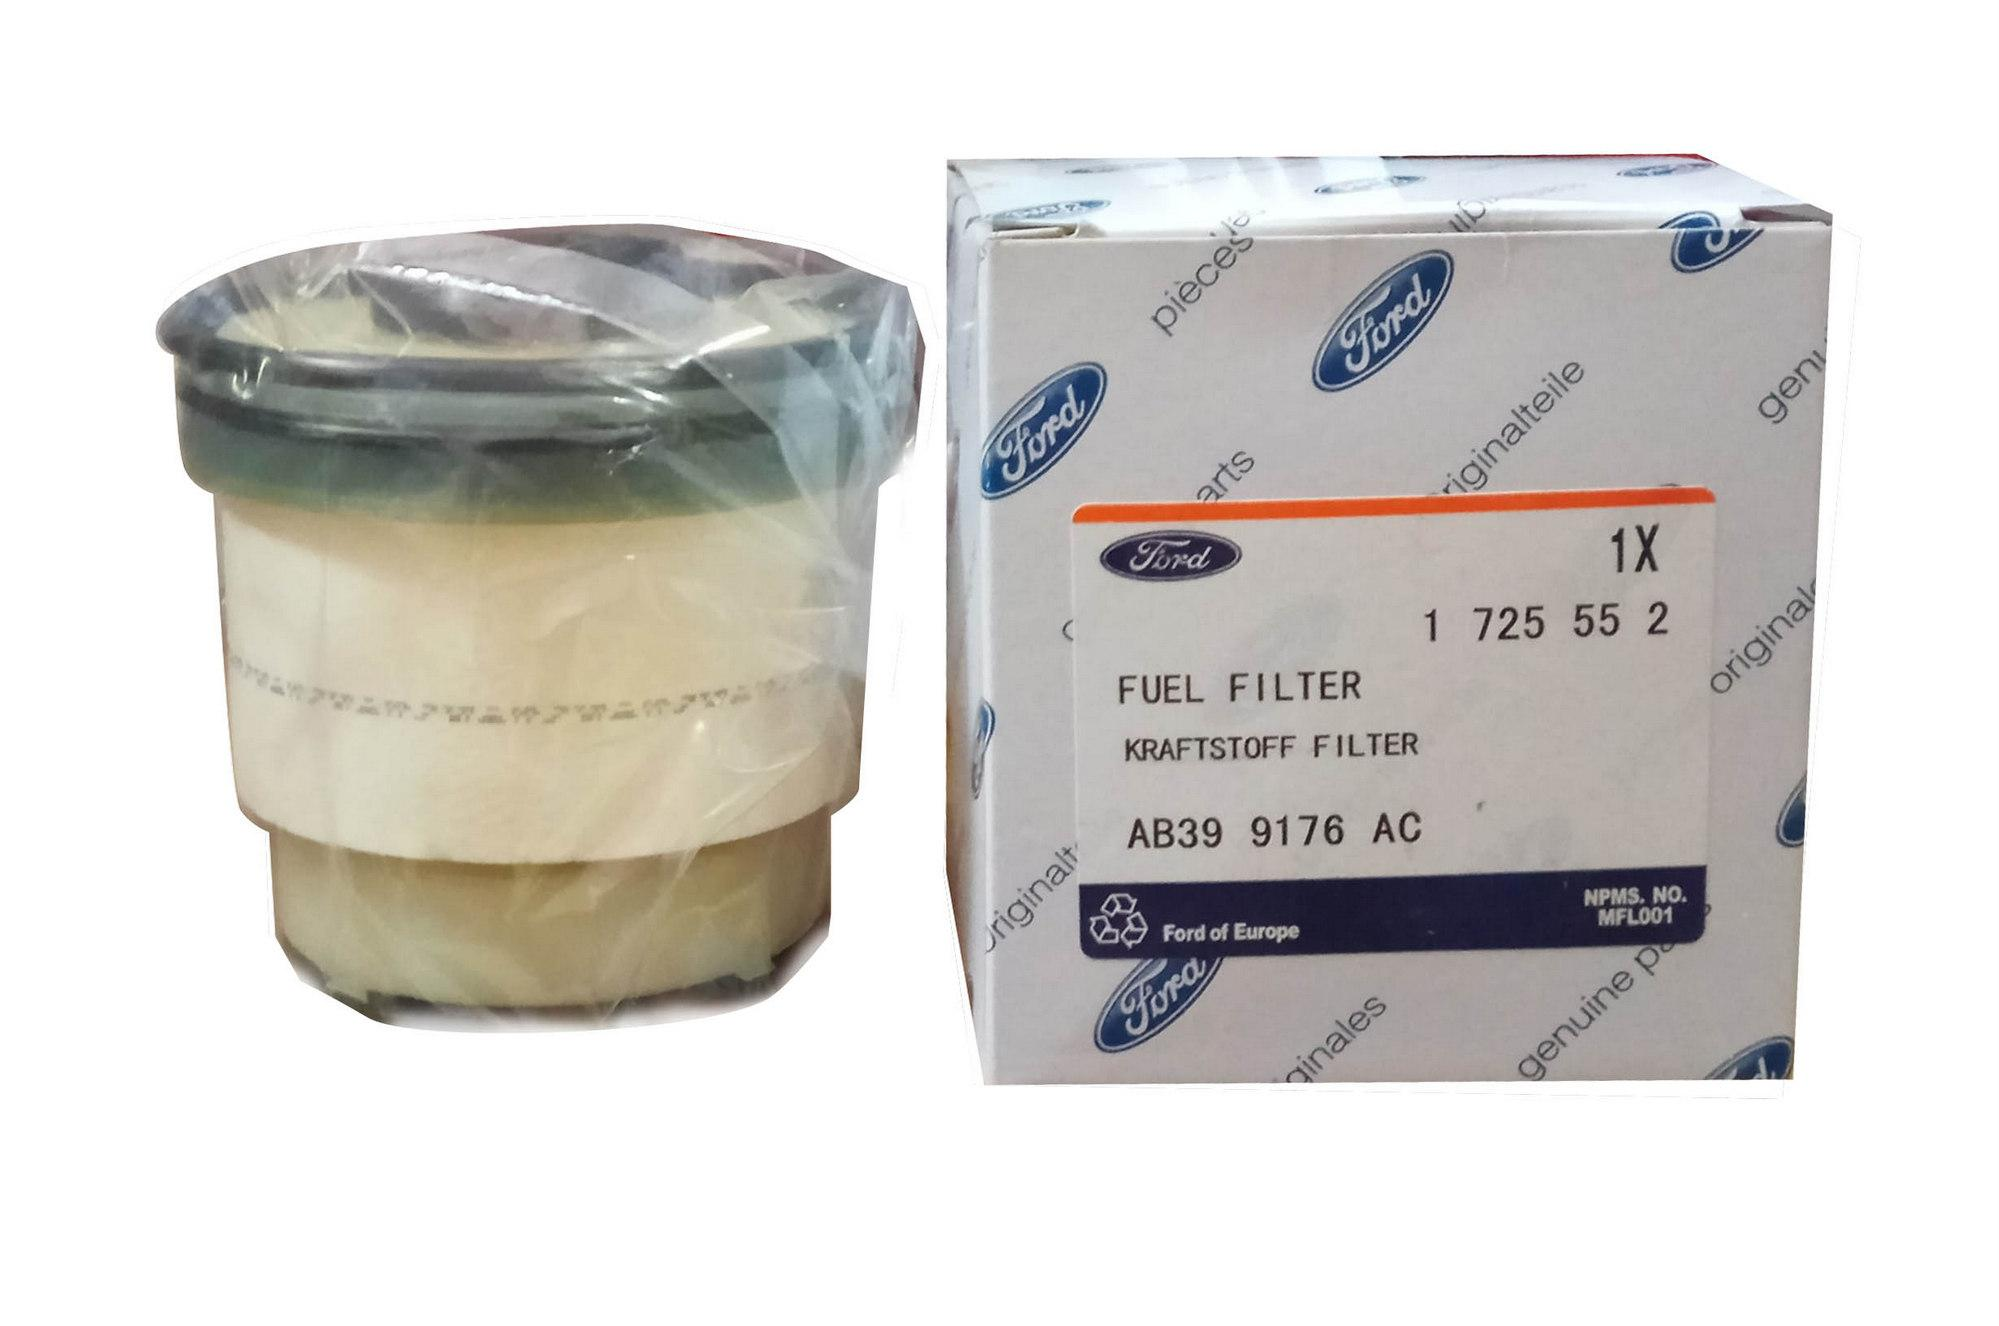 ford genuine fuel filter ab399176ac ( ab39-91-76ac ) for ford ranger /